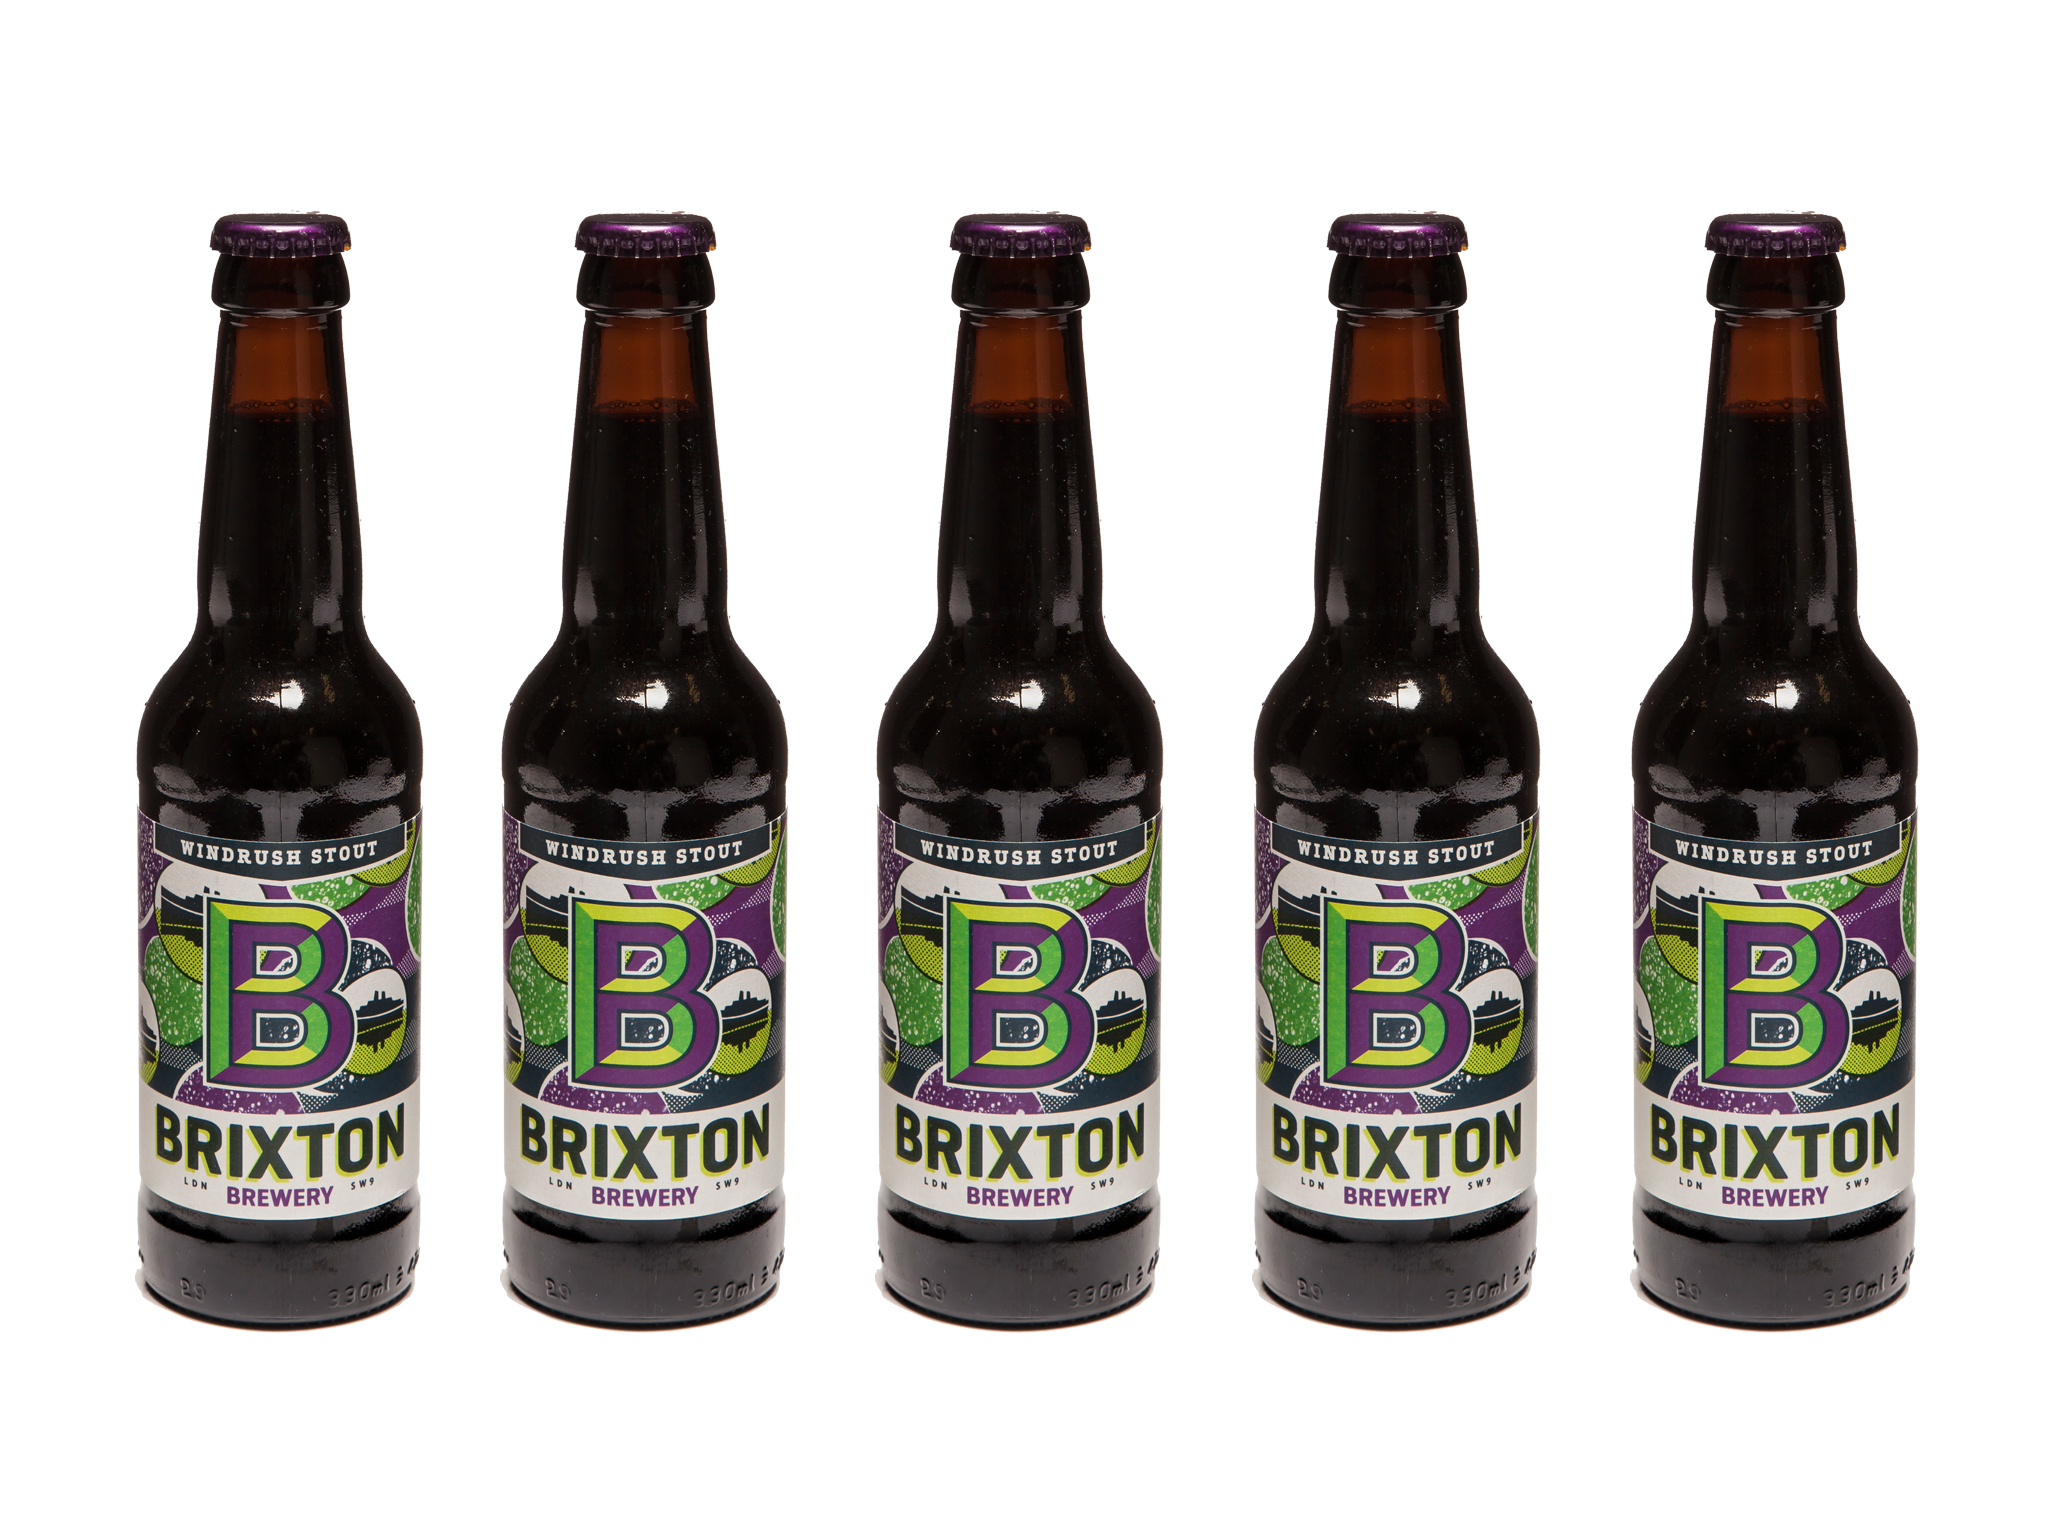 London's best craft beer, brixton brewery